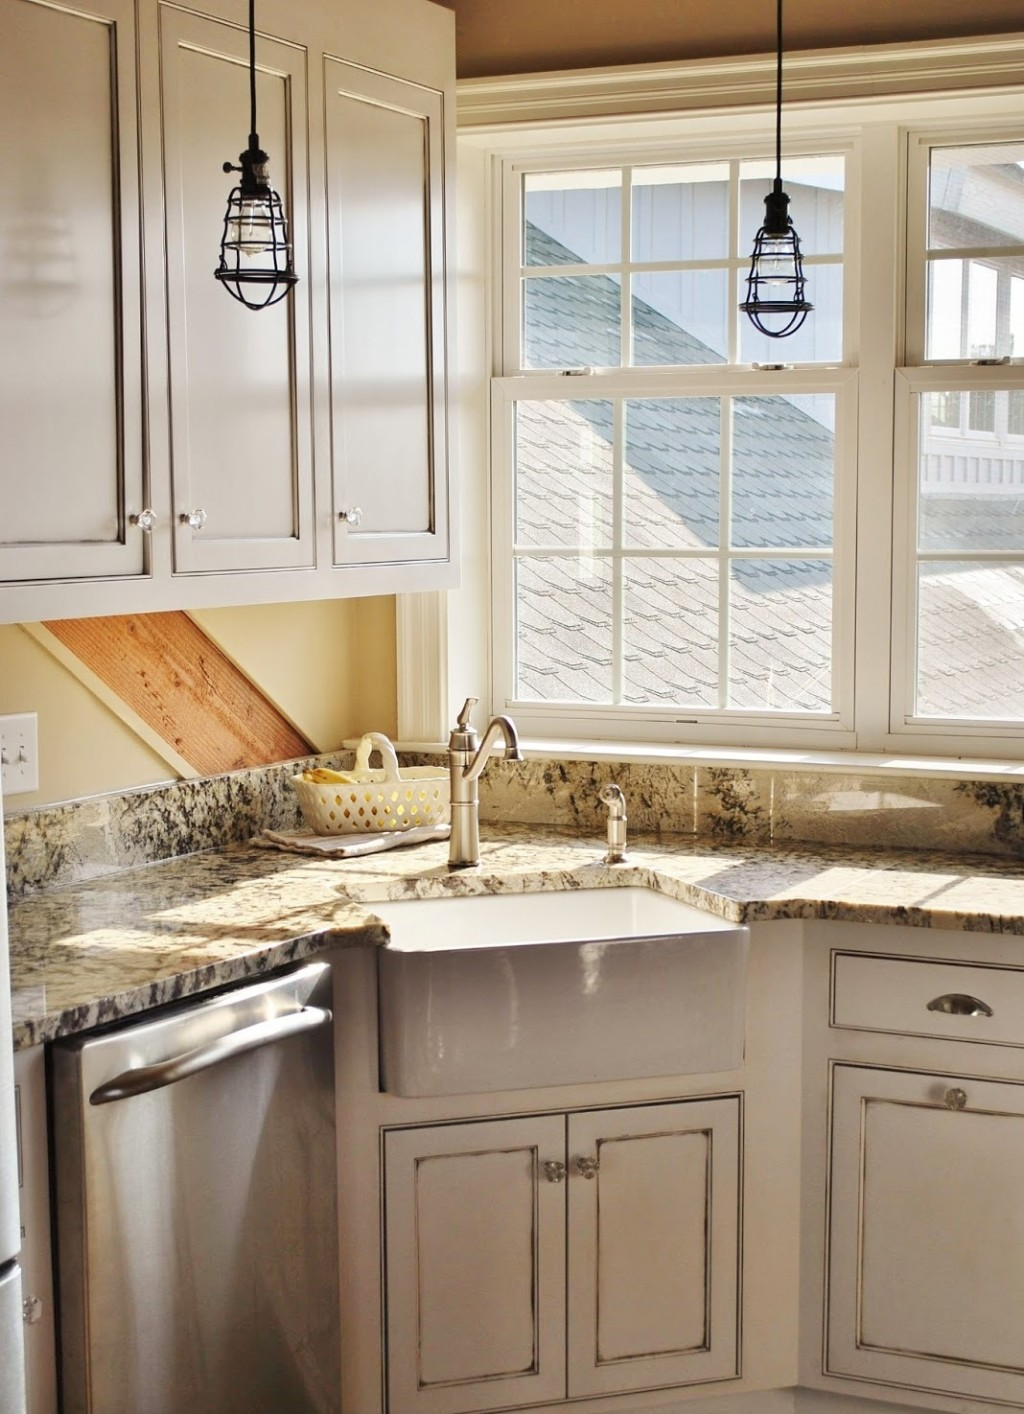 Advantages and disadvantages of corner kitchen sinks